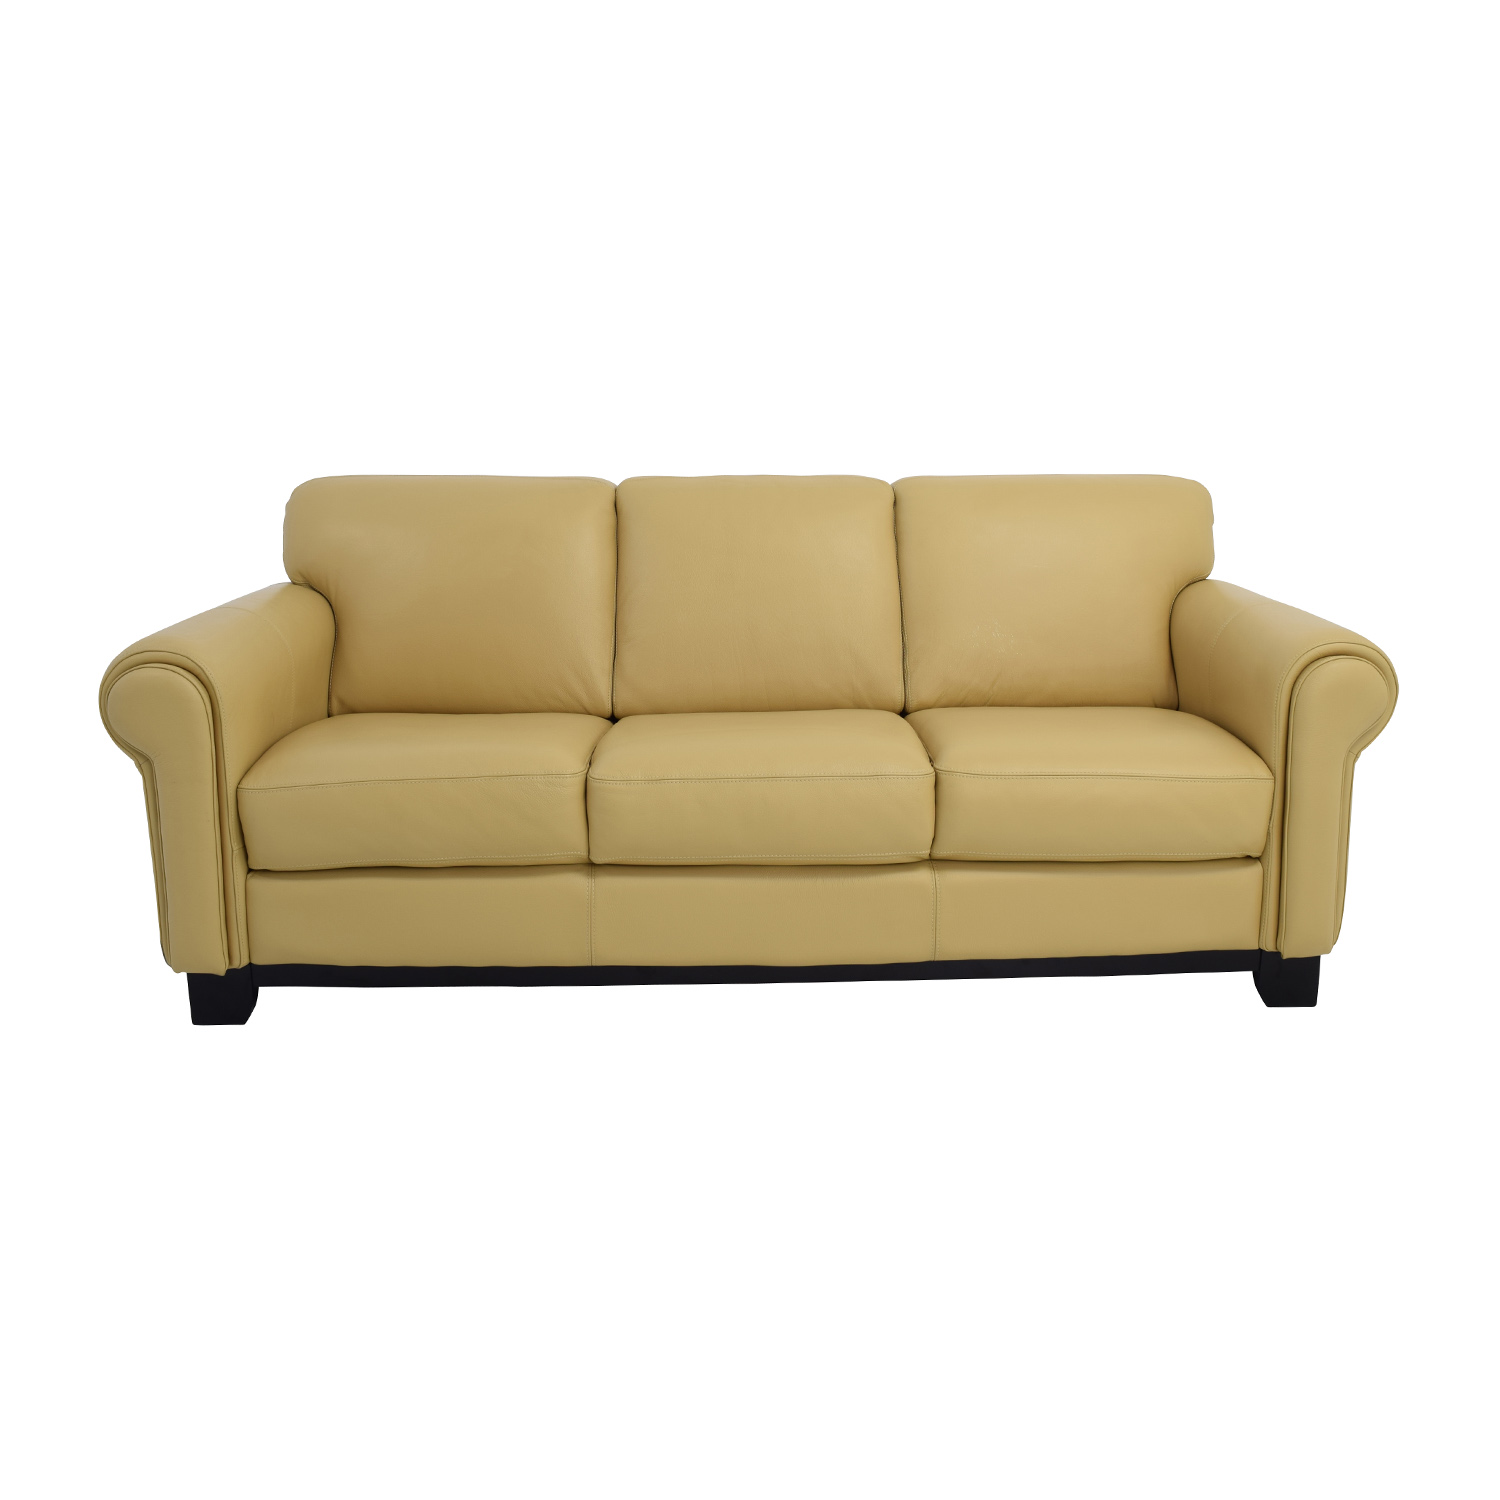 shop Chateau DAx Chateau DAx for Macys Beige Leather Three-Seat Cushion Sofa online